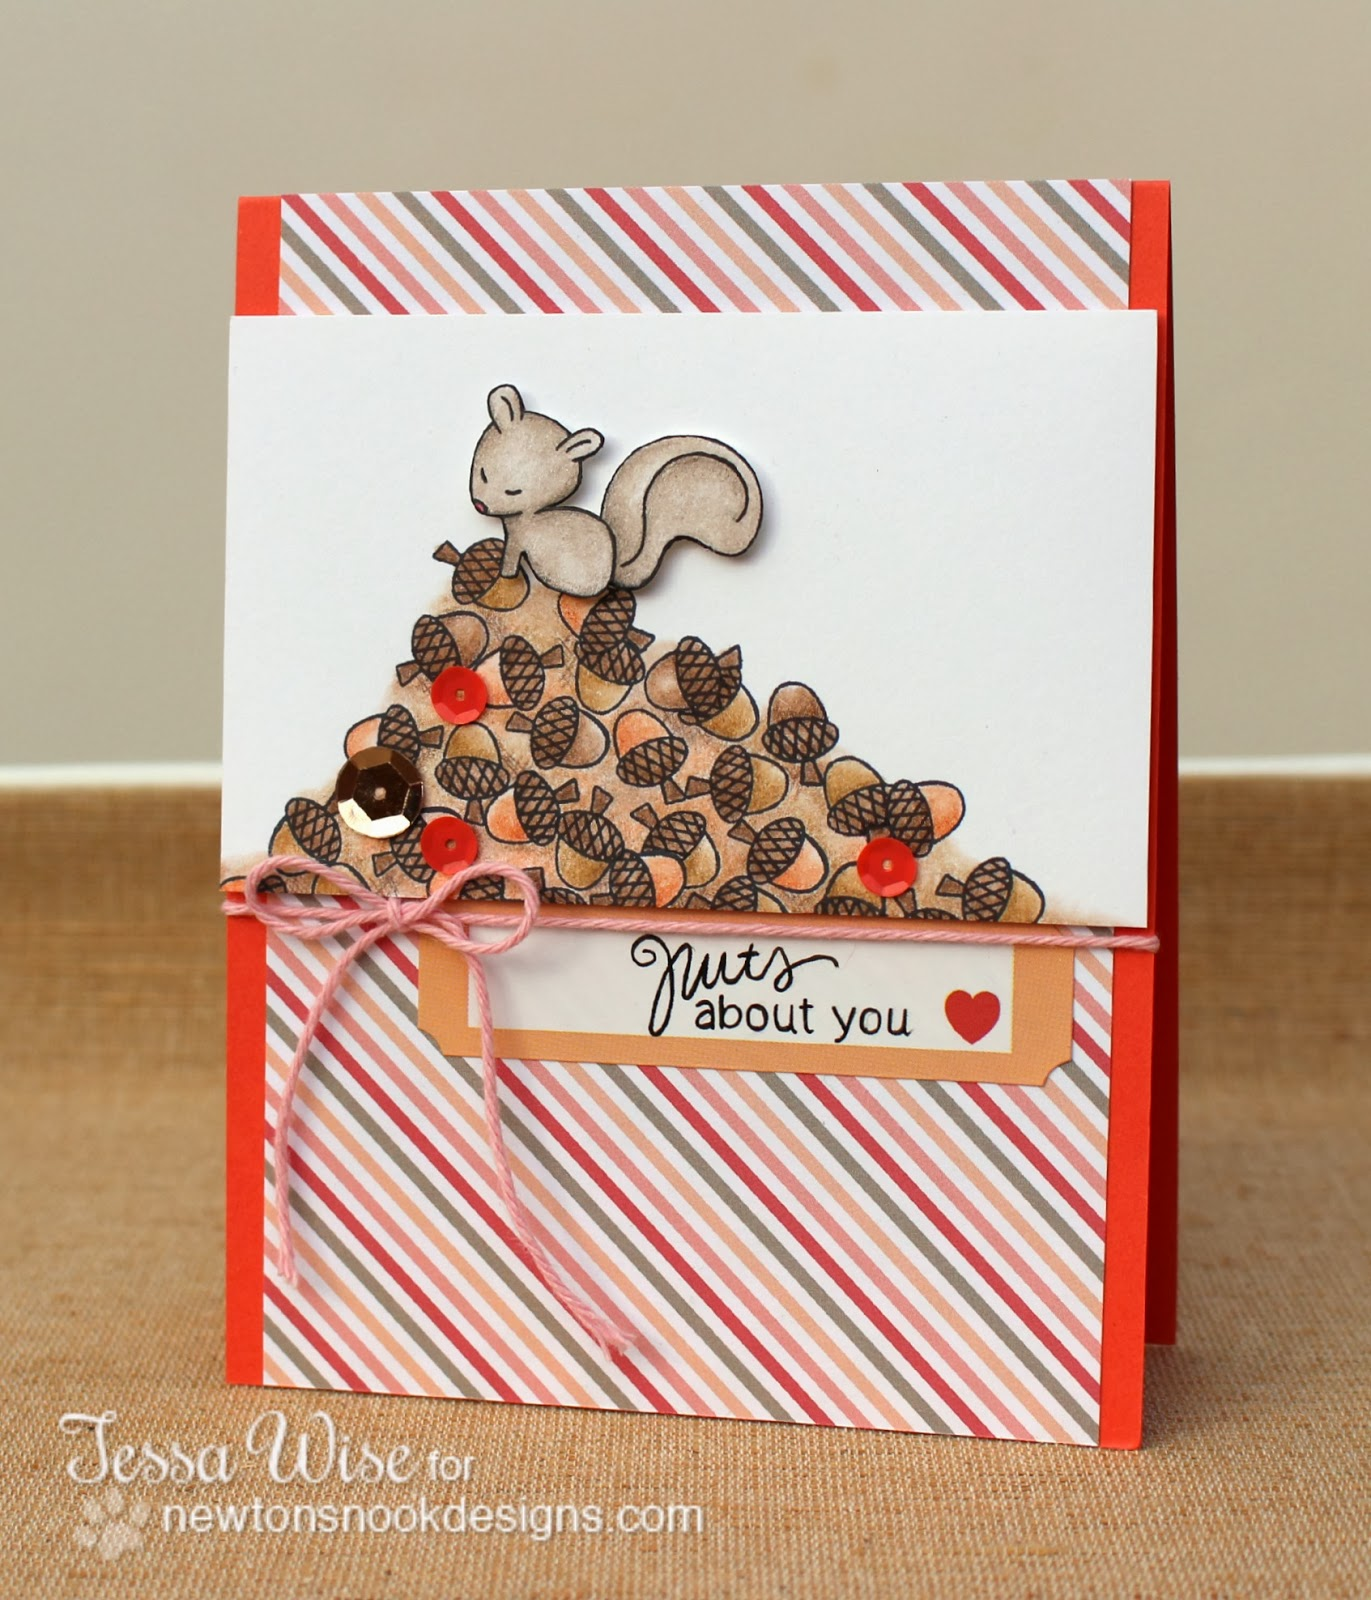 Valentine by Tessa Wise using Sweetheart Tails Stamp set by Newton's Nook Designs